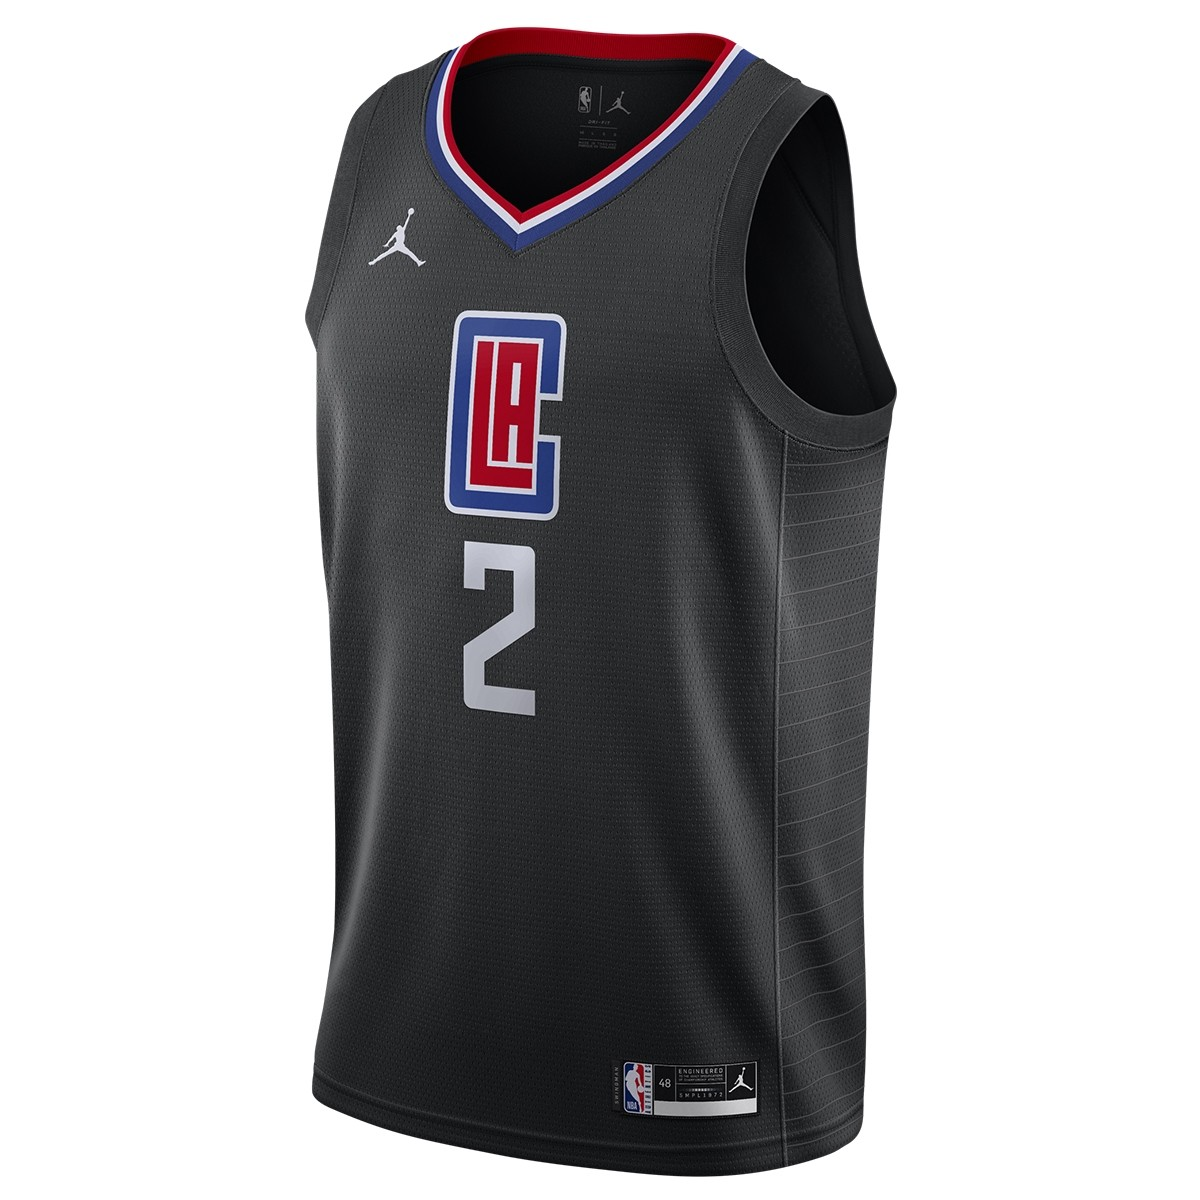 Jordan NBA Los Angeles Clippers Swingman Jersey Kawhi Leonard 'Statement Edition'